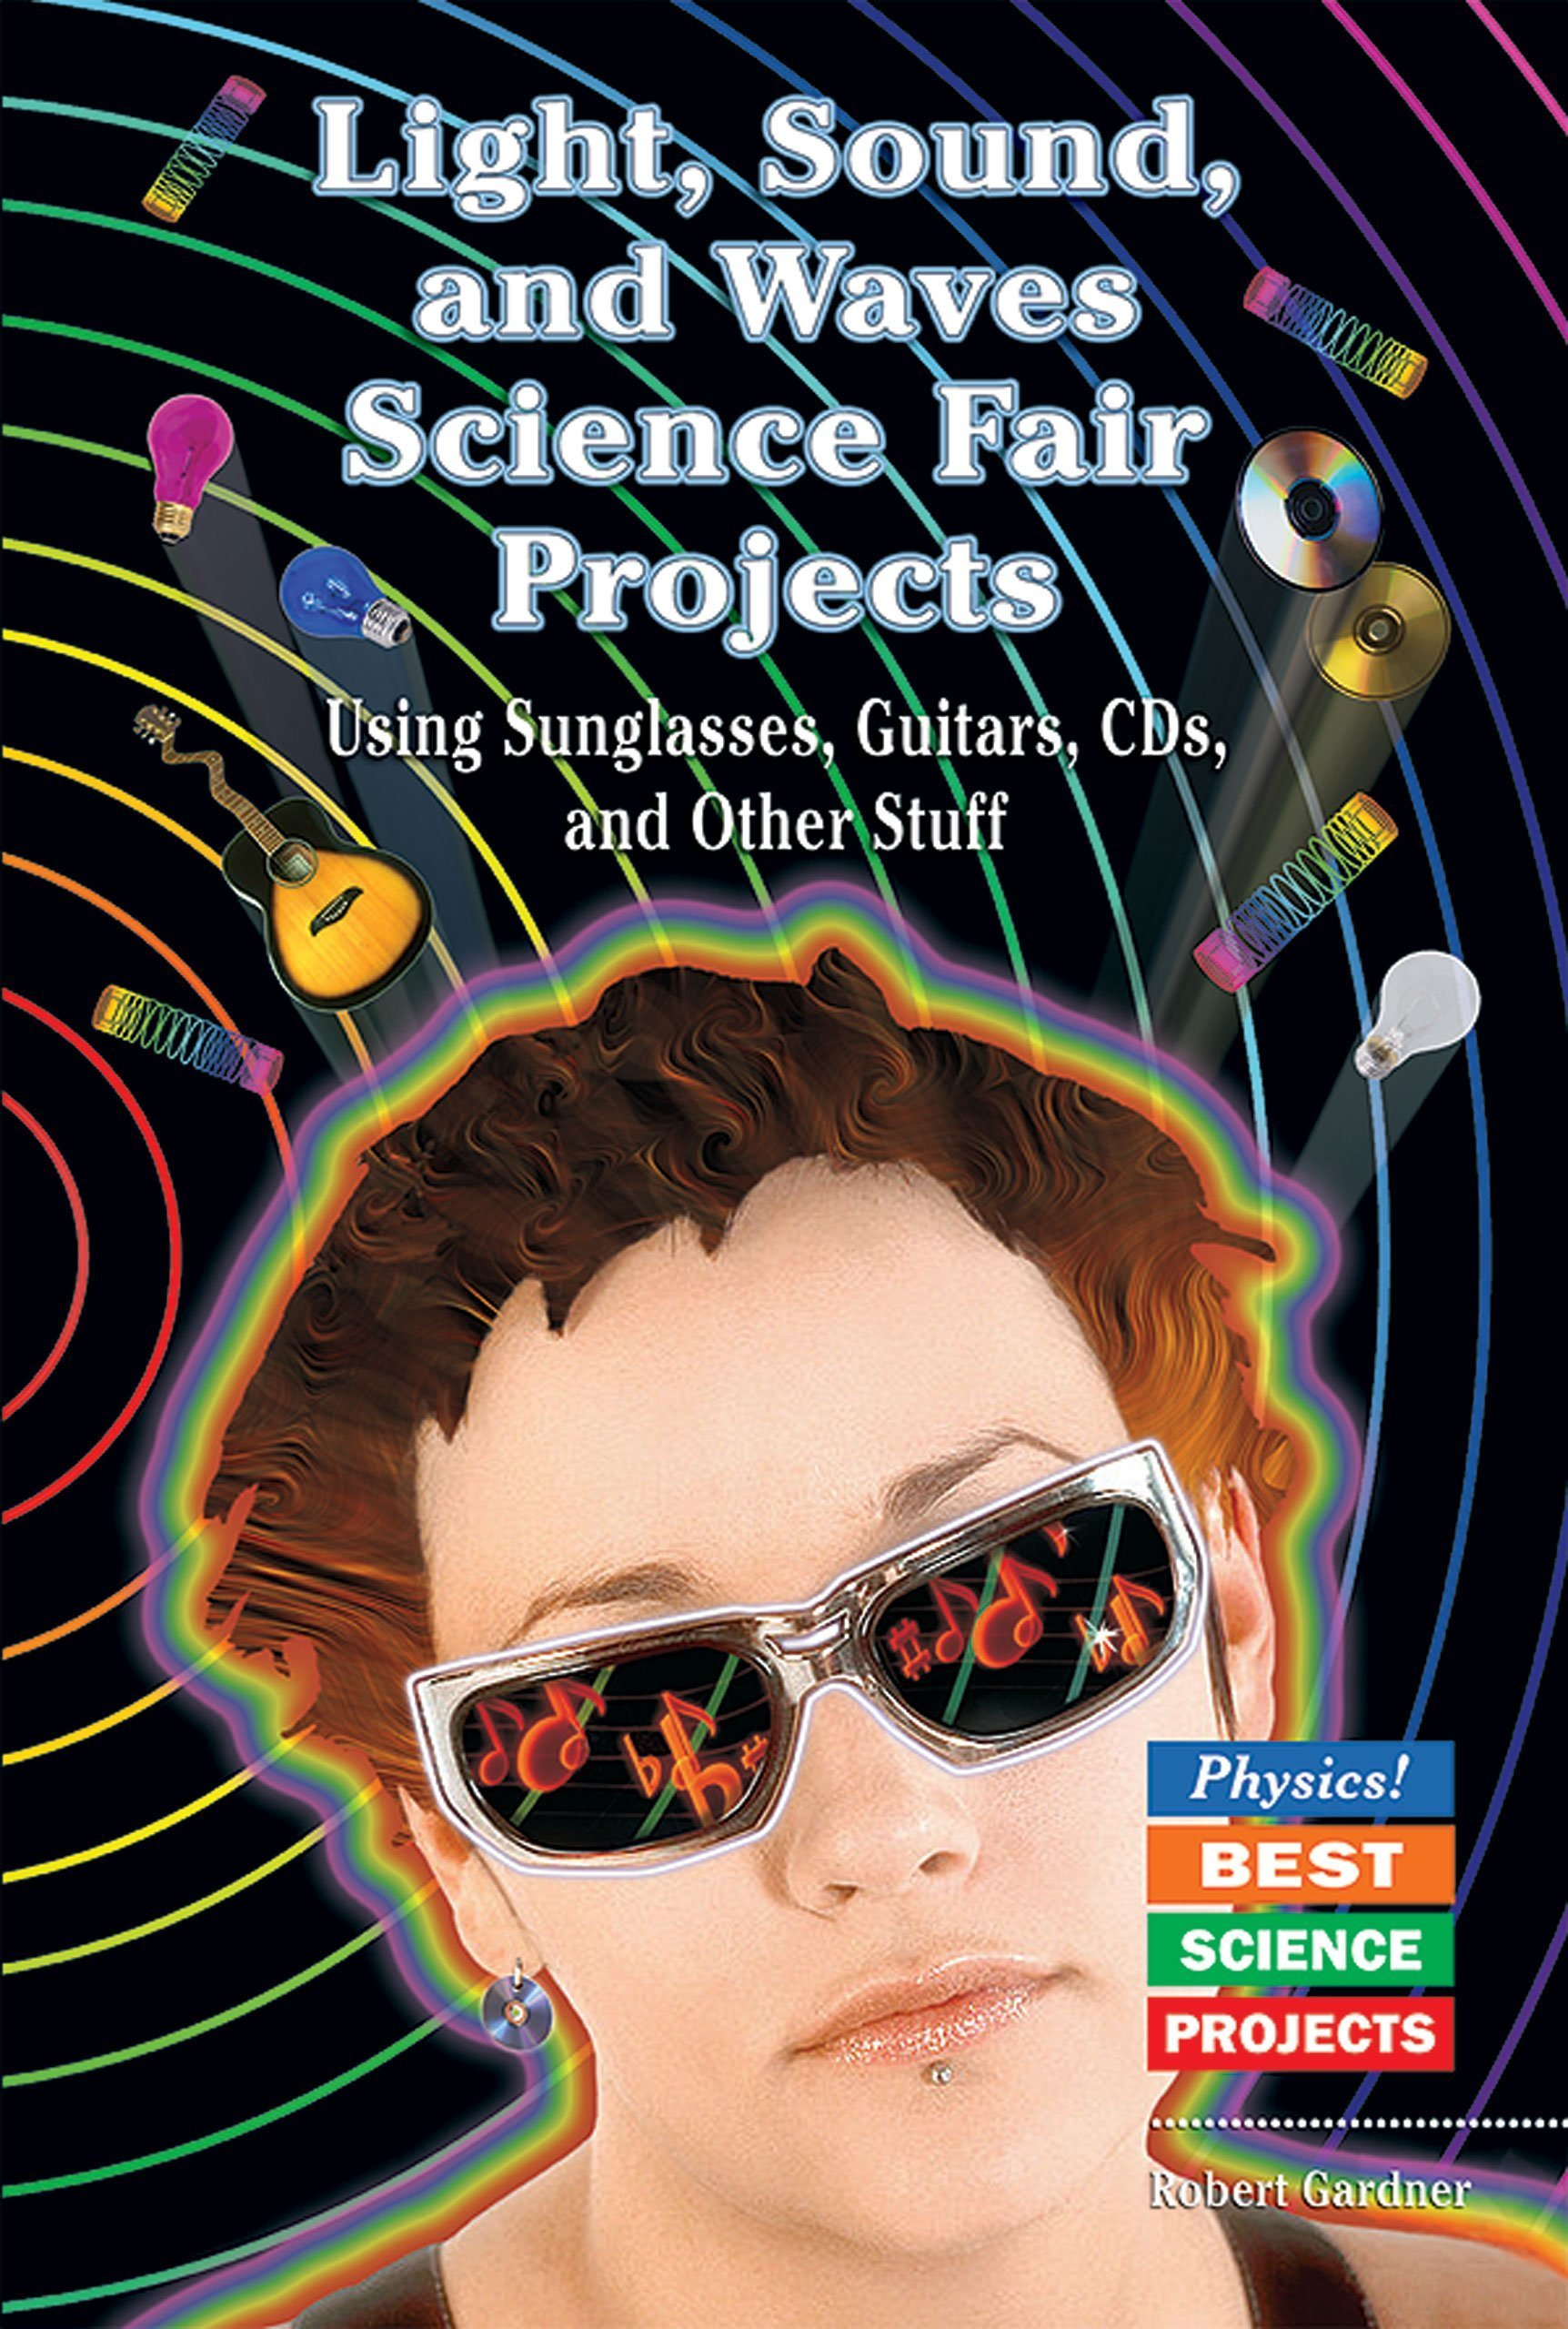 Light, Sound, and Waves Science Fair Projects: Using Sunglasses, Guitars, Cds, and Other Stuff (Physics! Best Science Projects) pdf